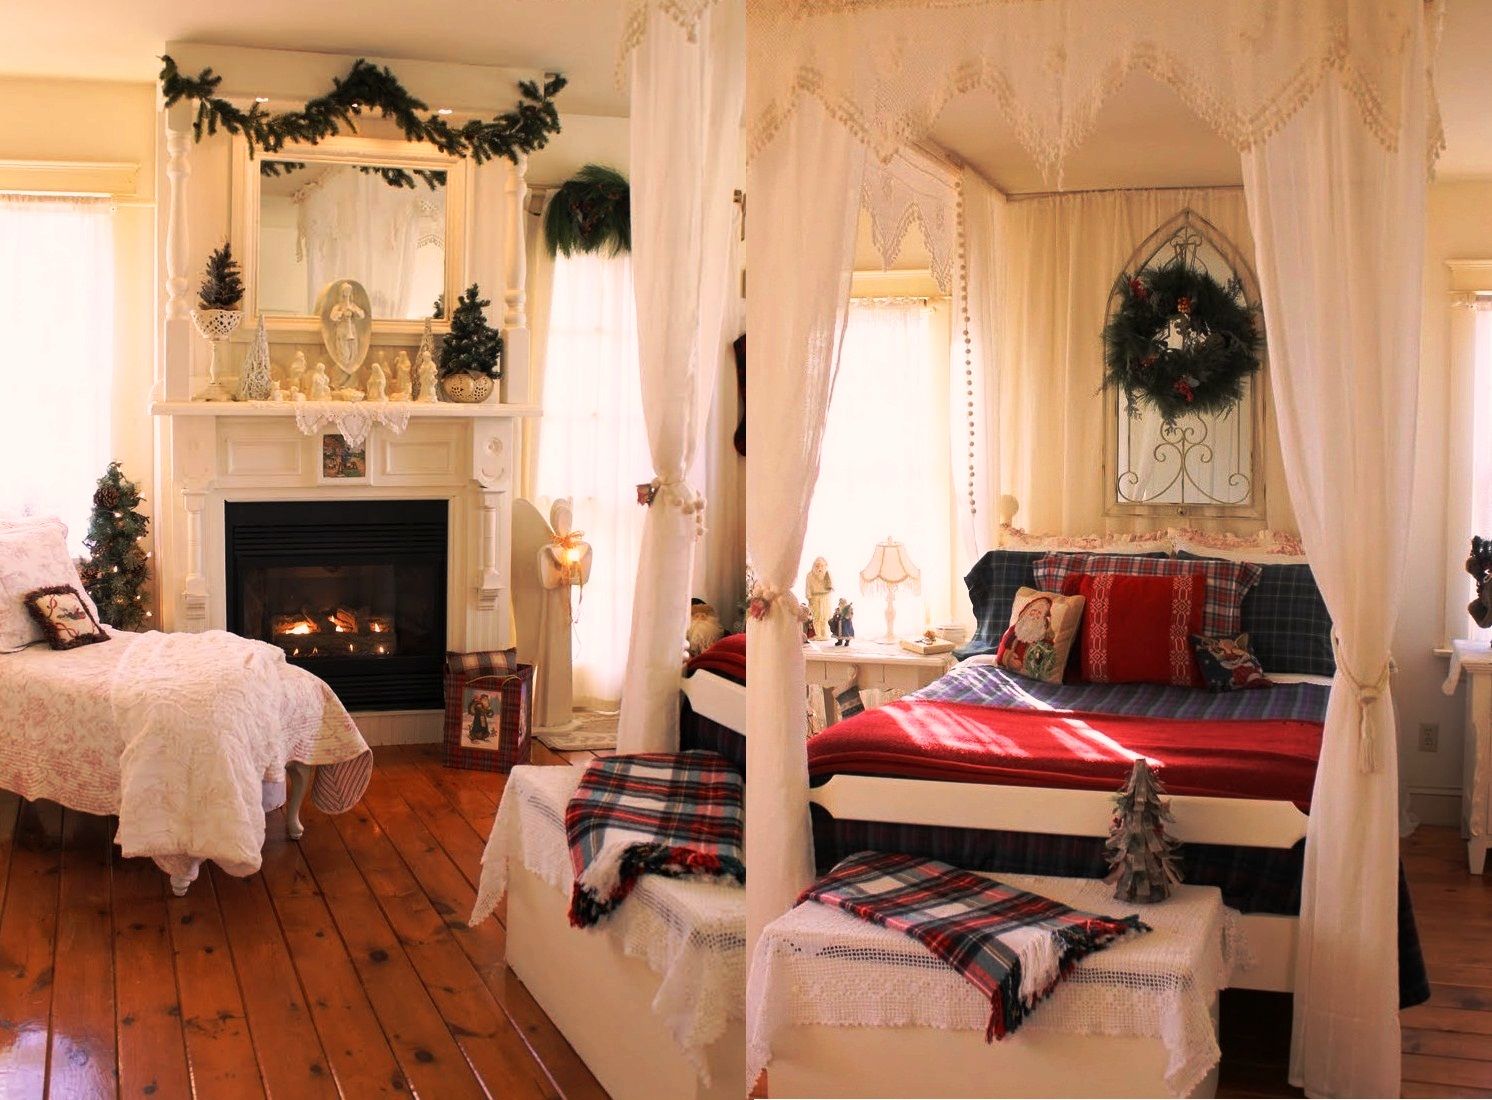 . 30 Christmas Bedroom Decorations Ideas